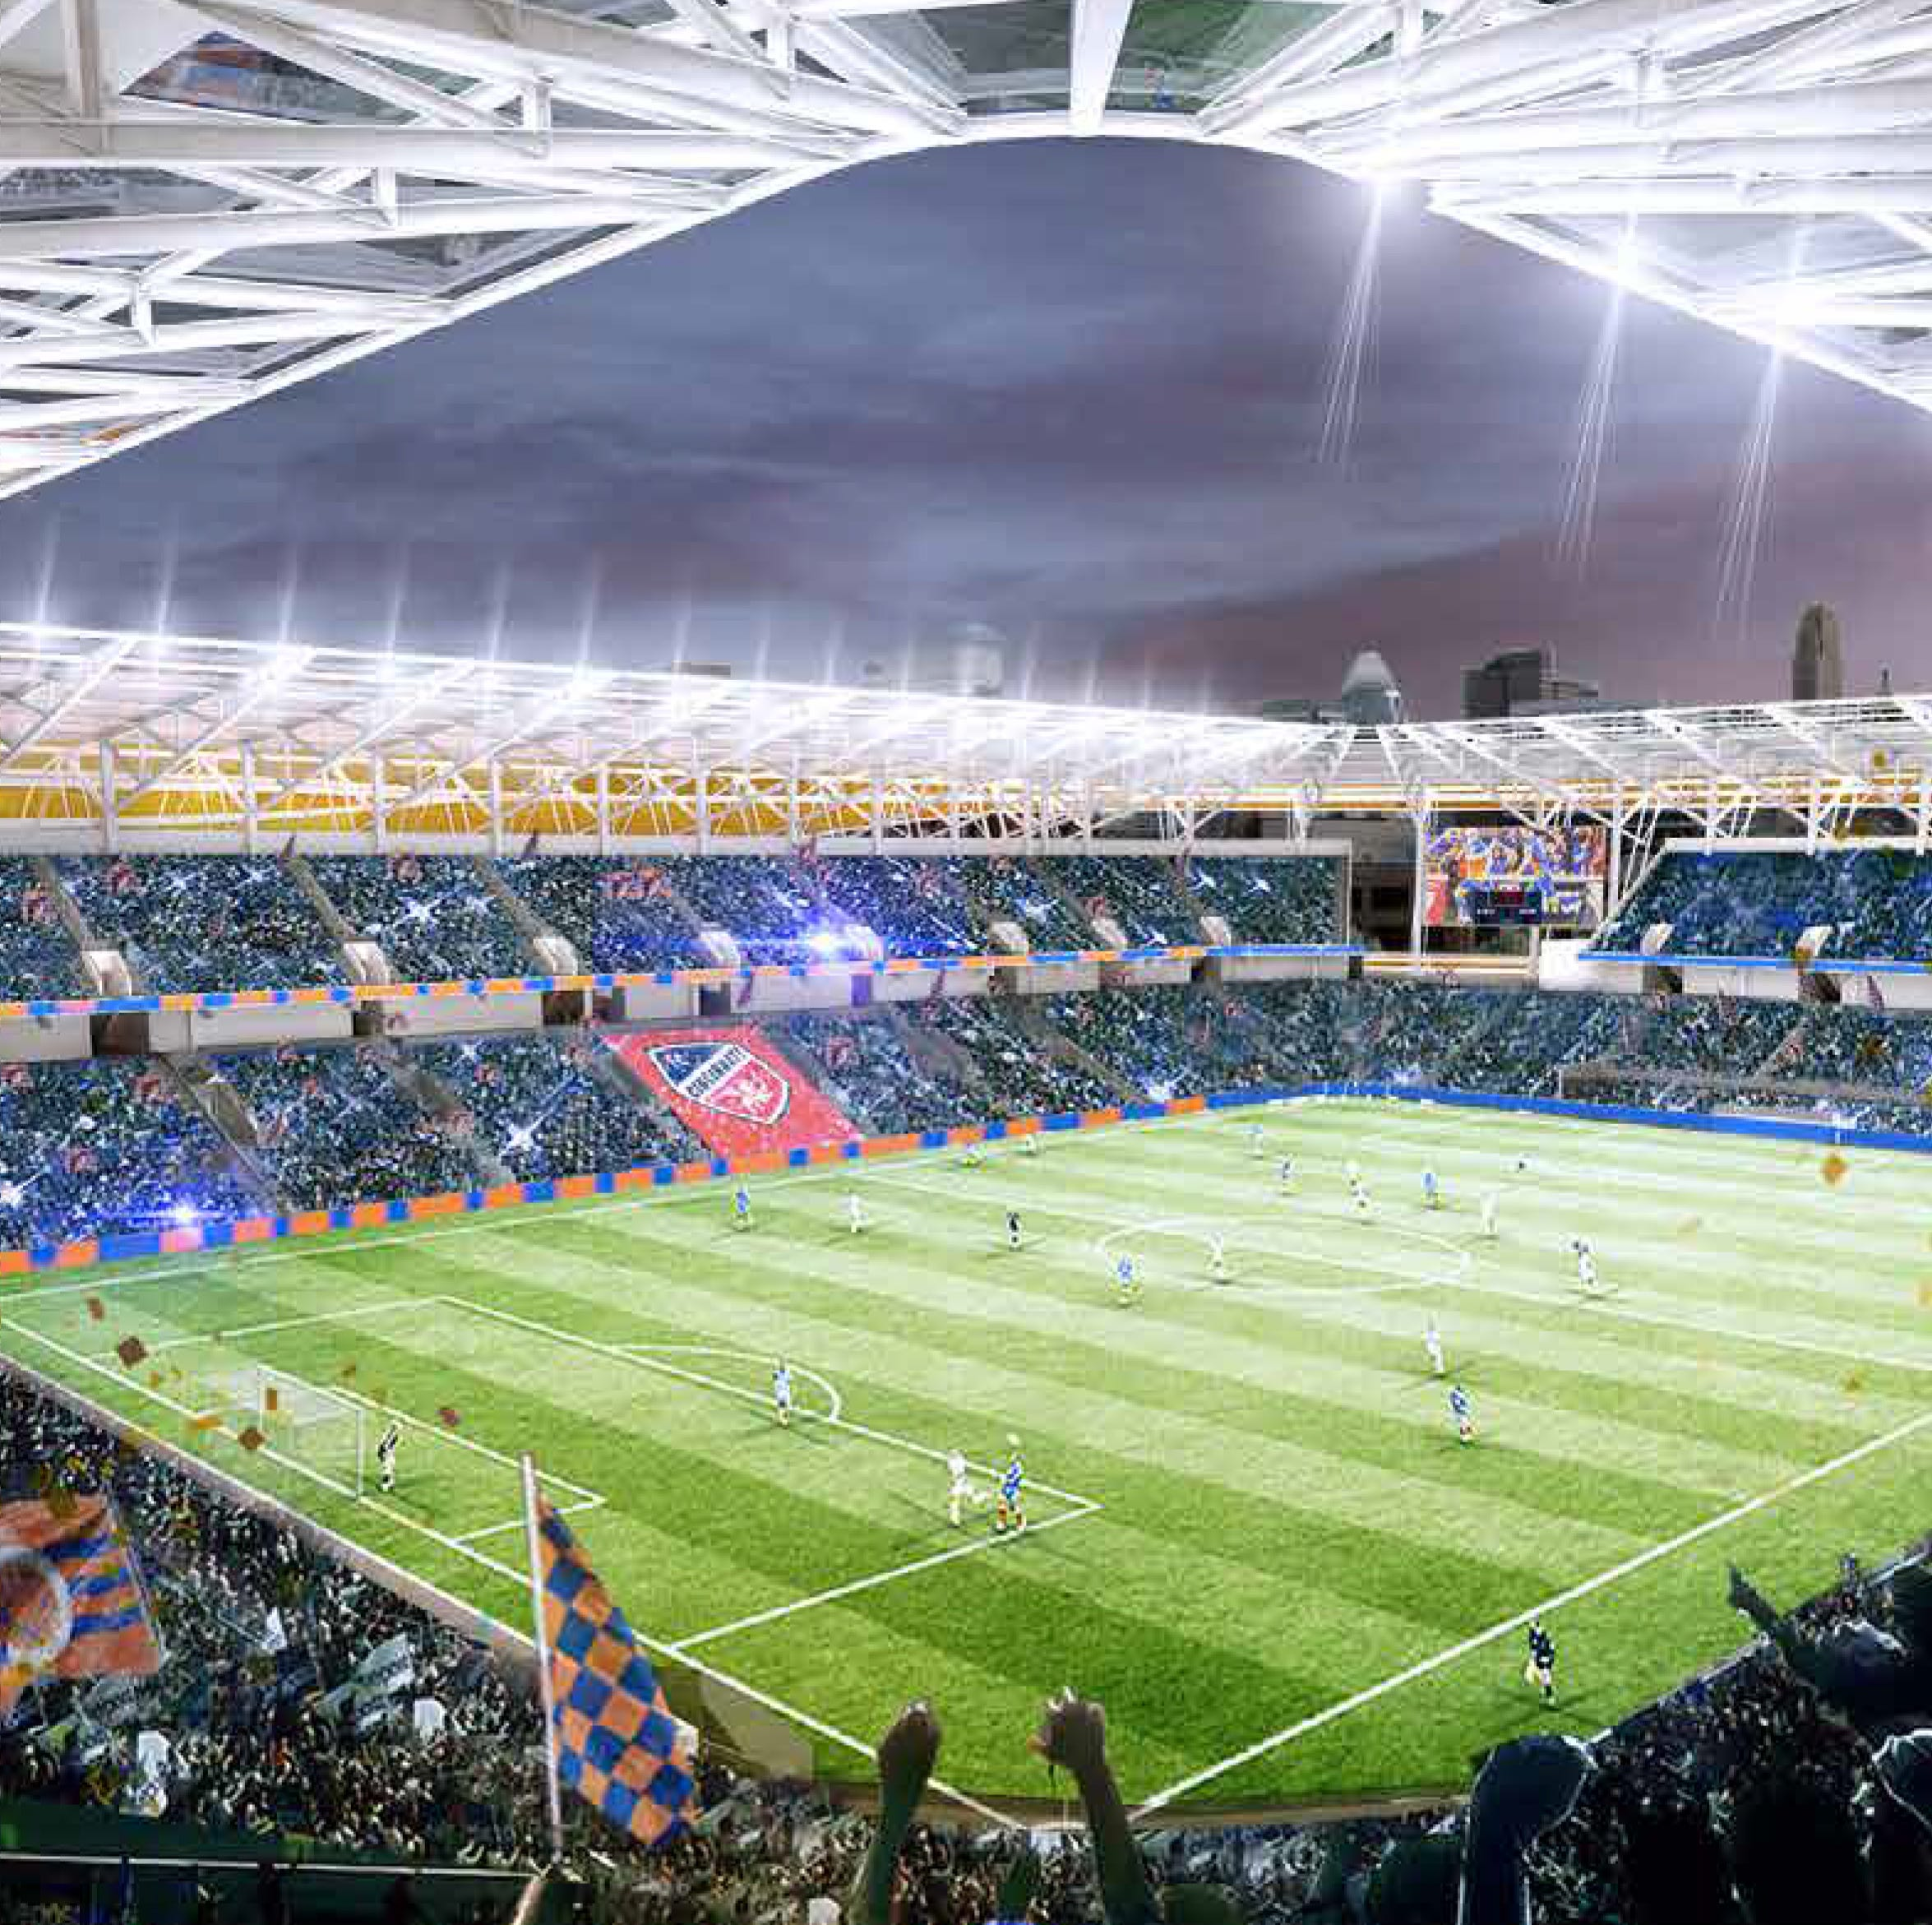 New renderings: FC Cincinnati stadium will have a canopy over every seat; will glow less